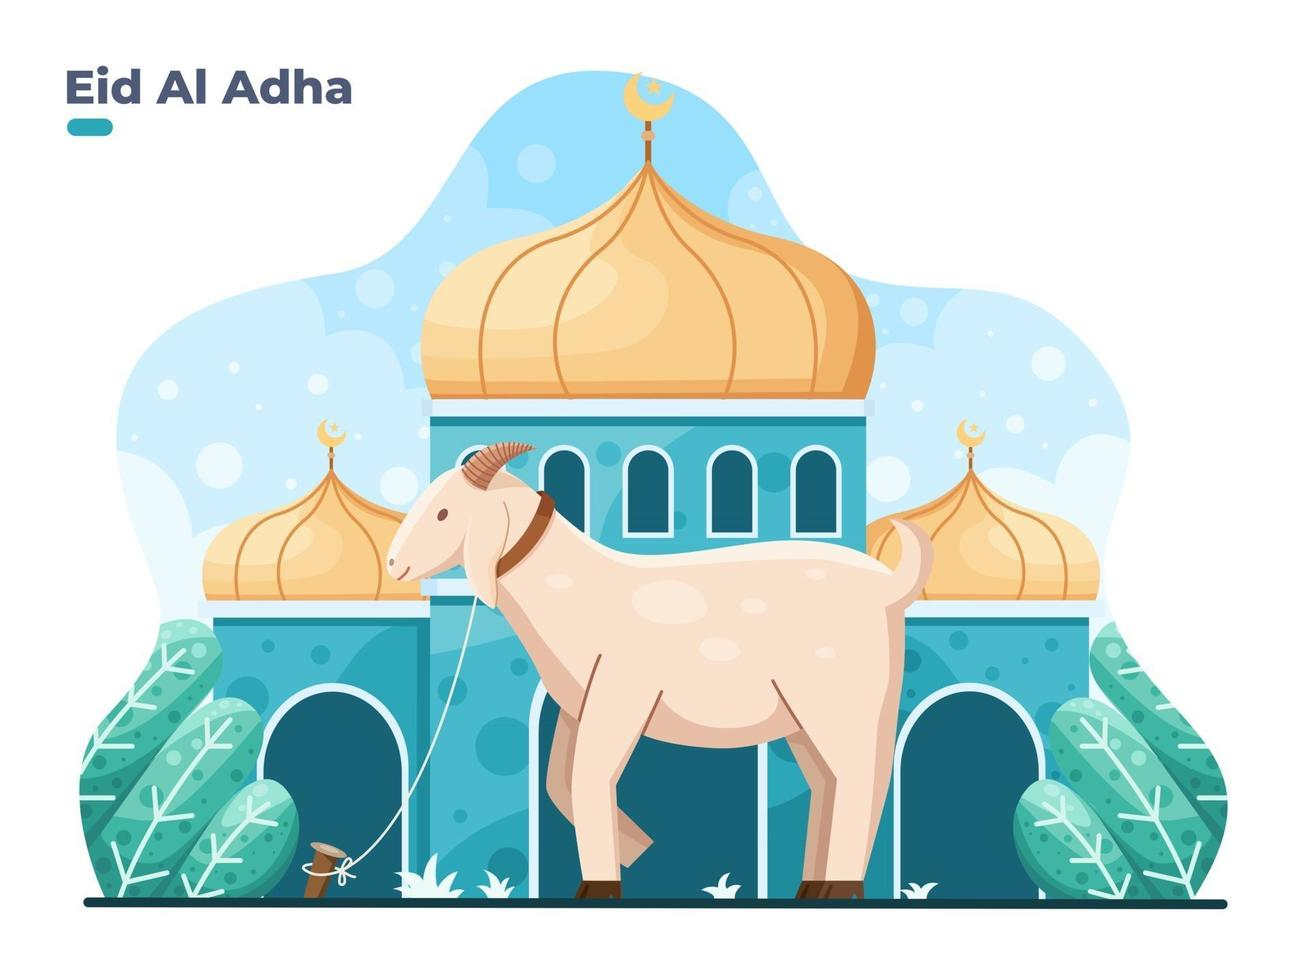 eid al adha flat vector illustration with goat or sheep animal in front of mosque selamat hari raya idul adha means happy eid aladha also called sacrifice festival